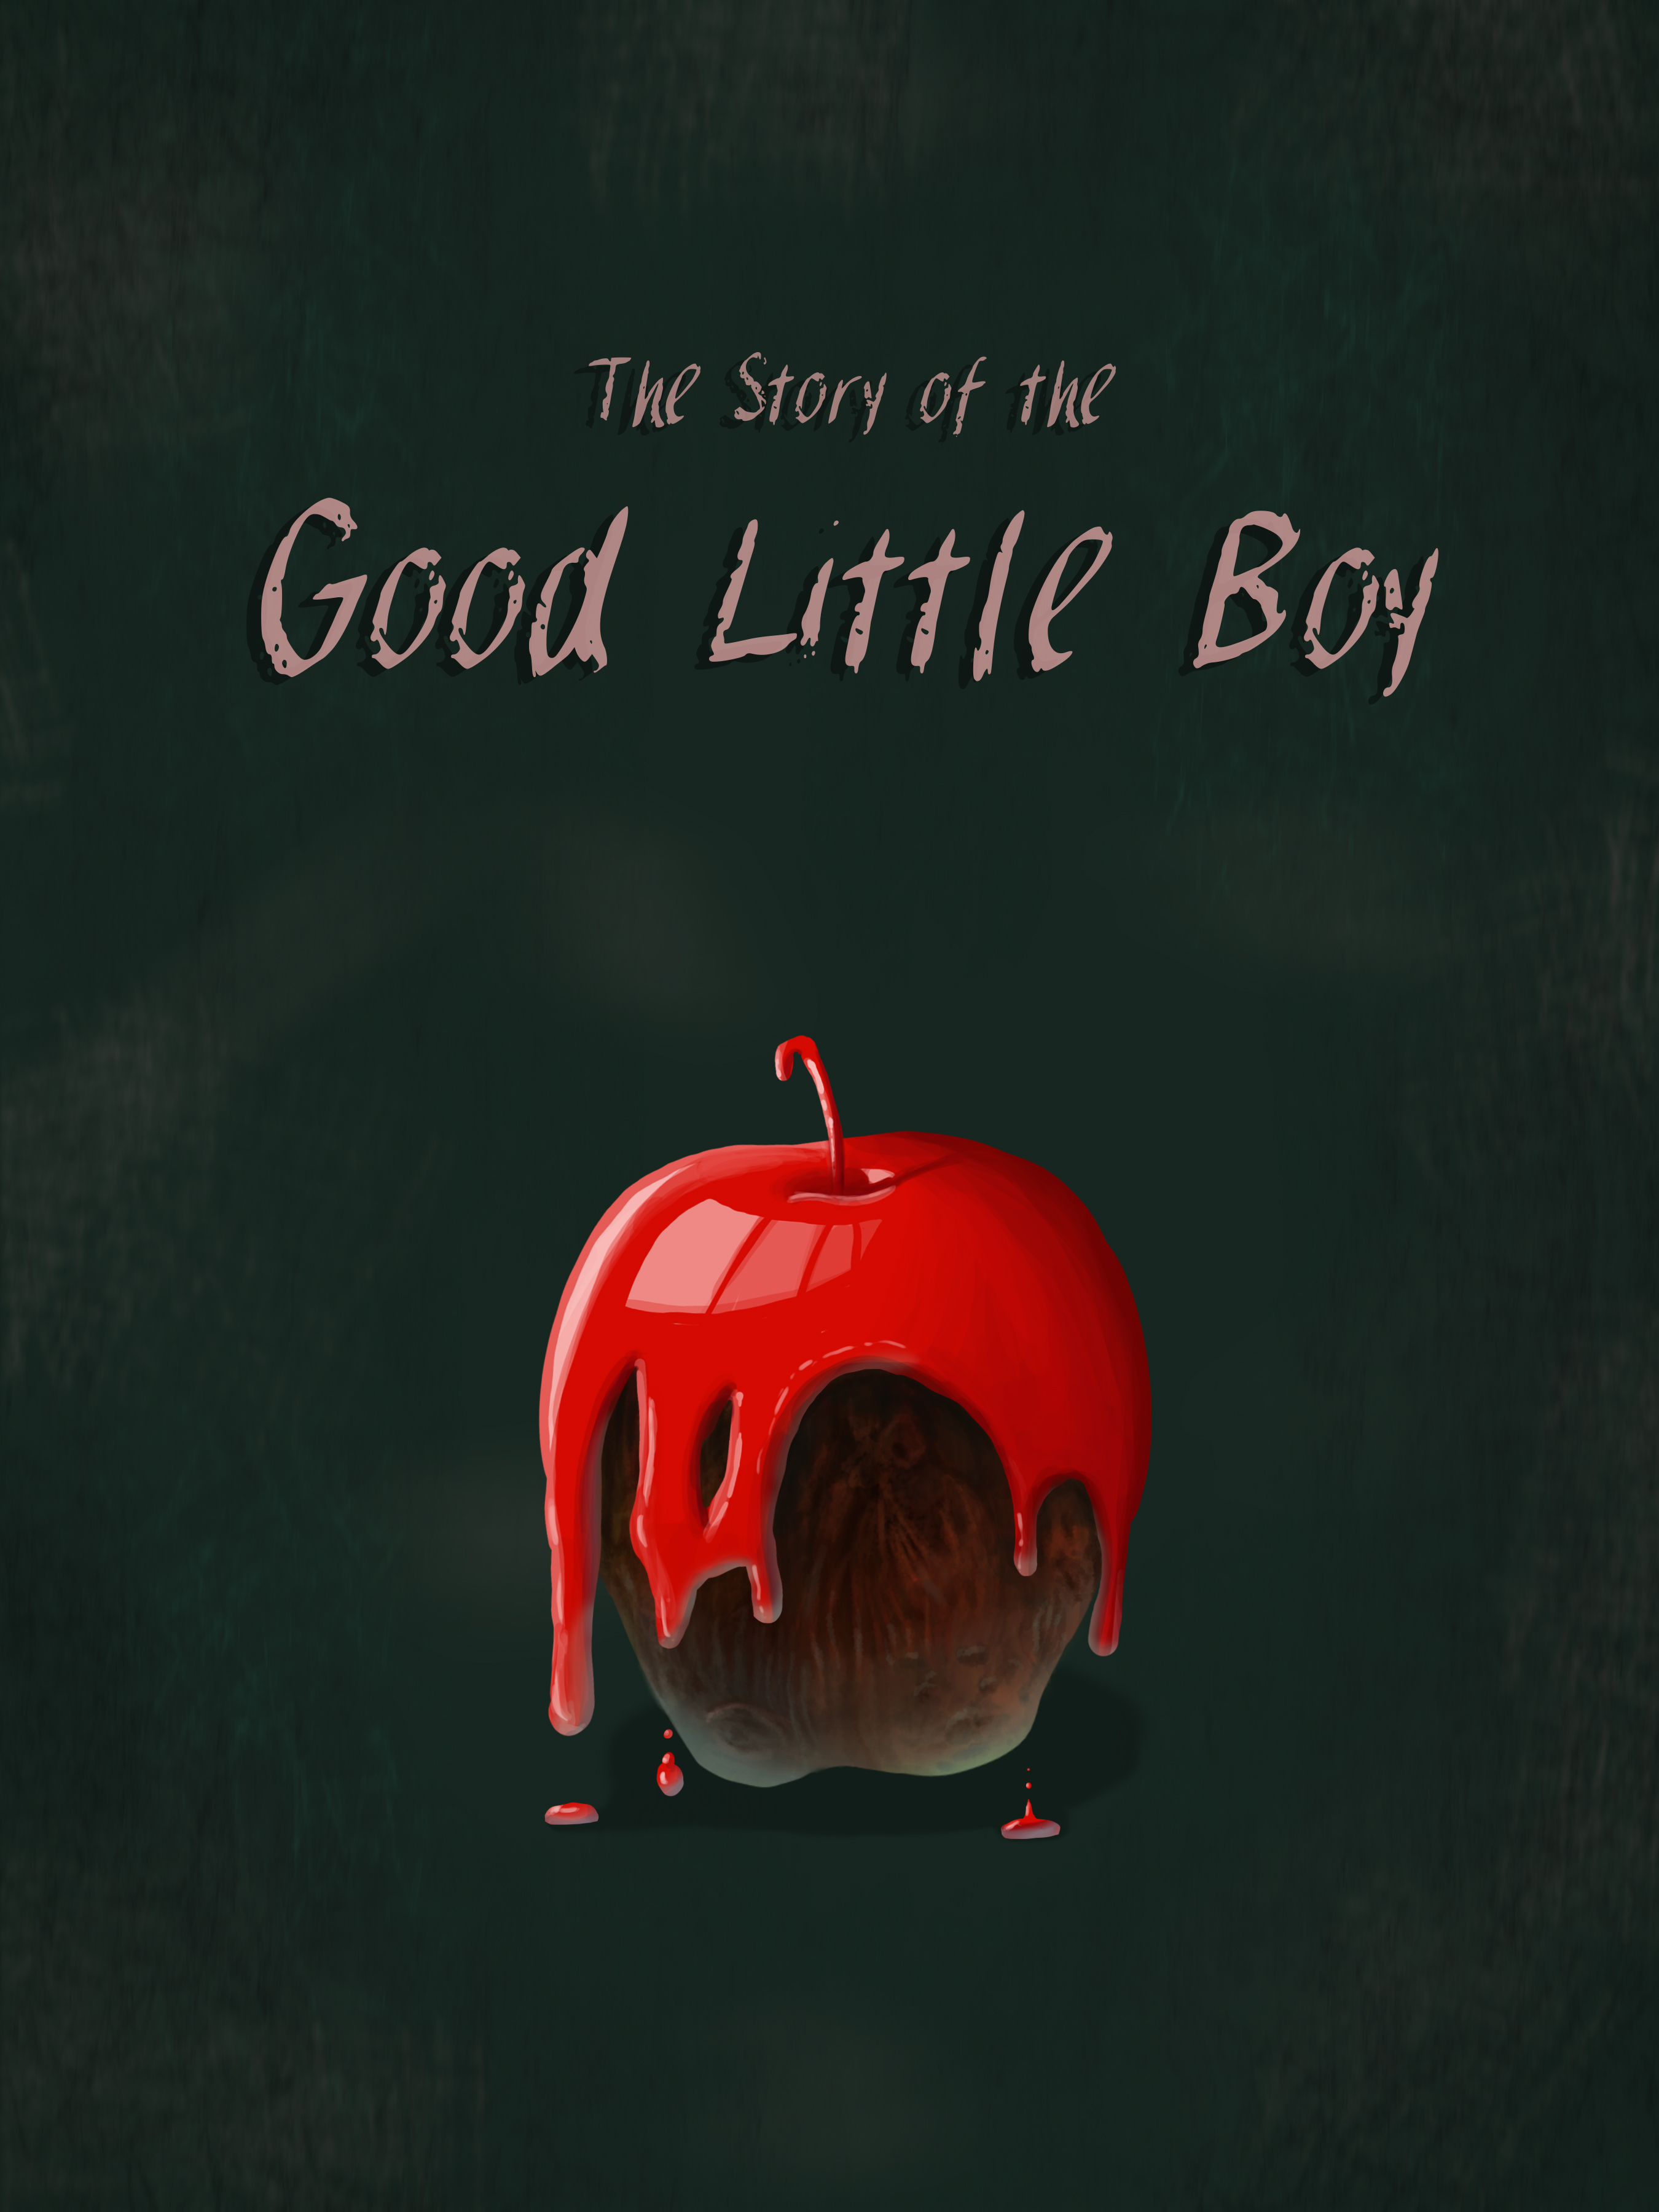 The Story of the Good Little Boy